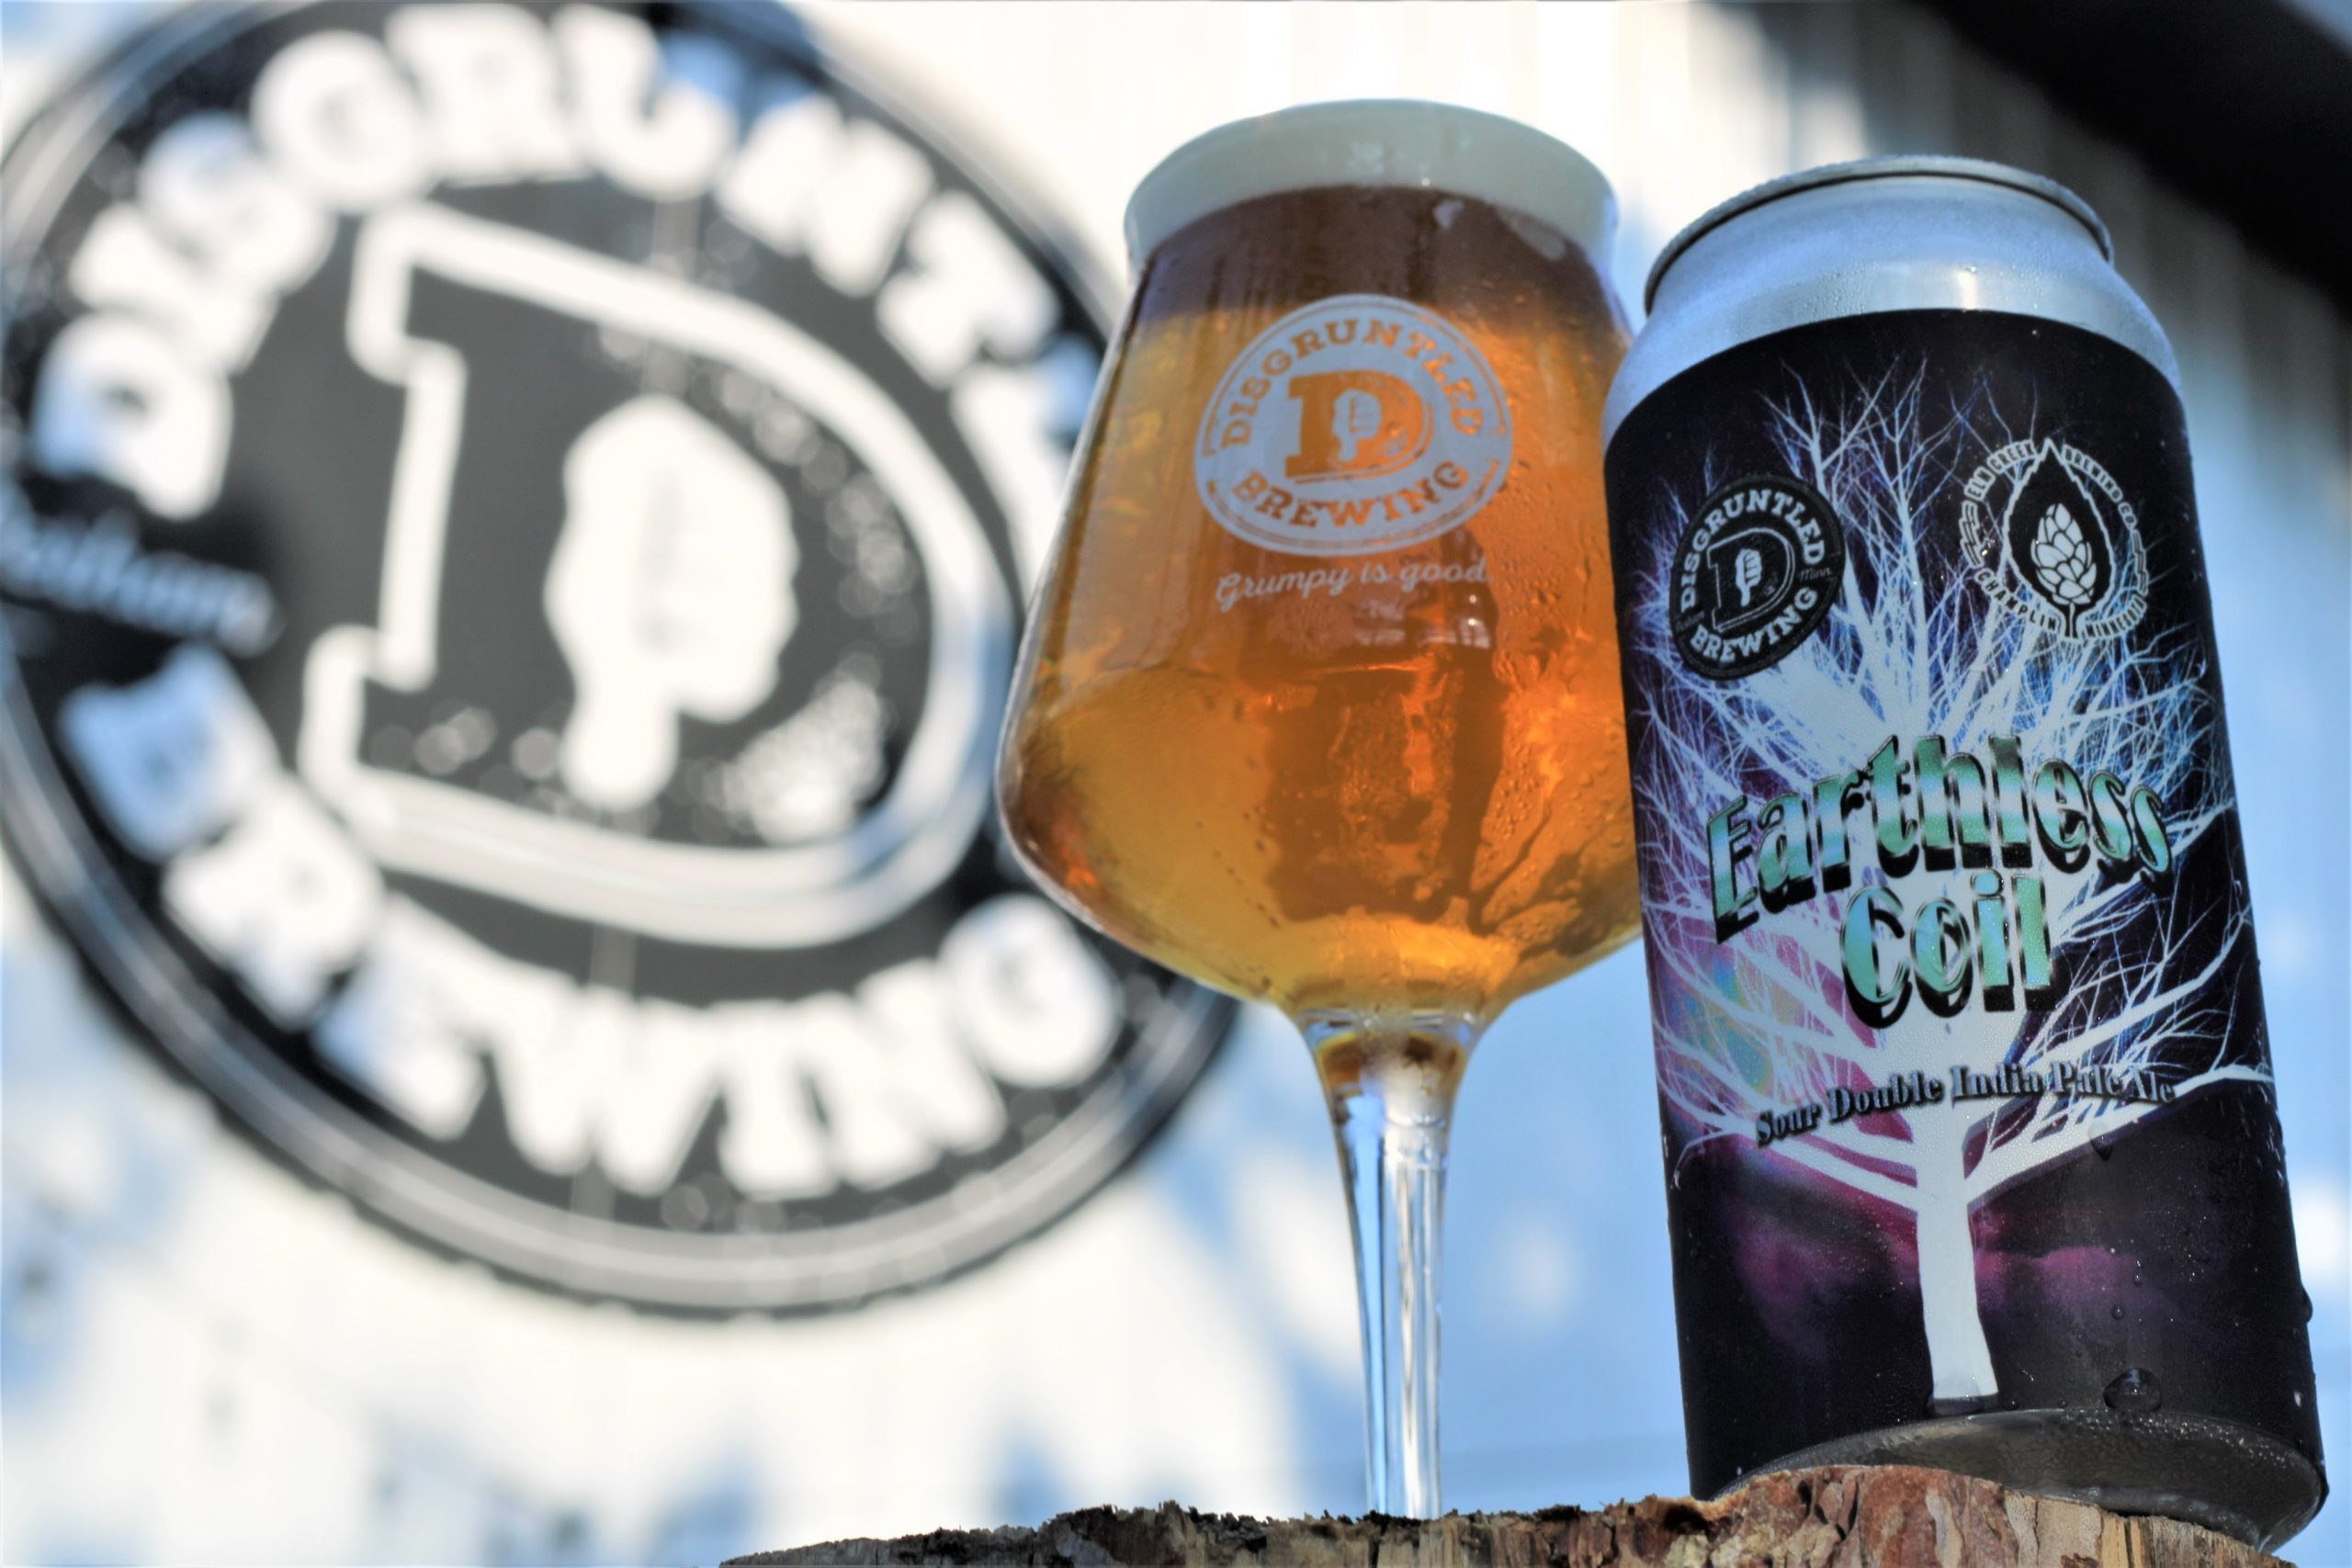 Disgruntled Earthless Coil • Photo via Disgruntled Brewing